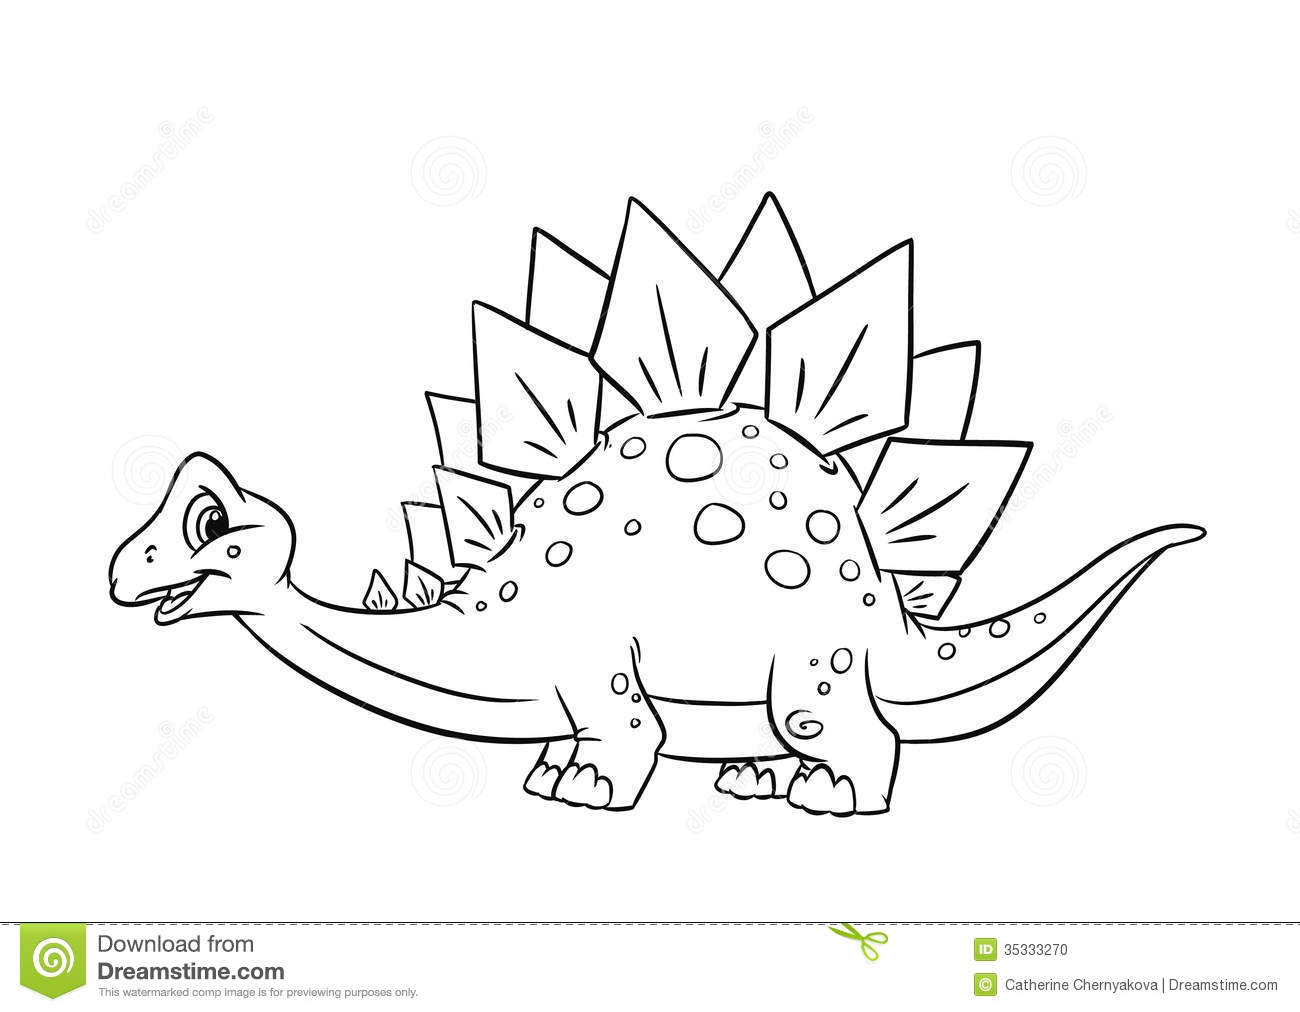 Stock Photo Dinosaur Stegosaurus Coloring Pages Isolated Illustration Cartoon Image35333270 on dinosaur vector graphics